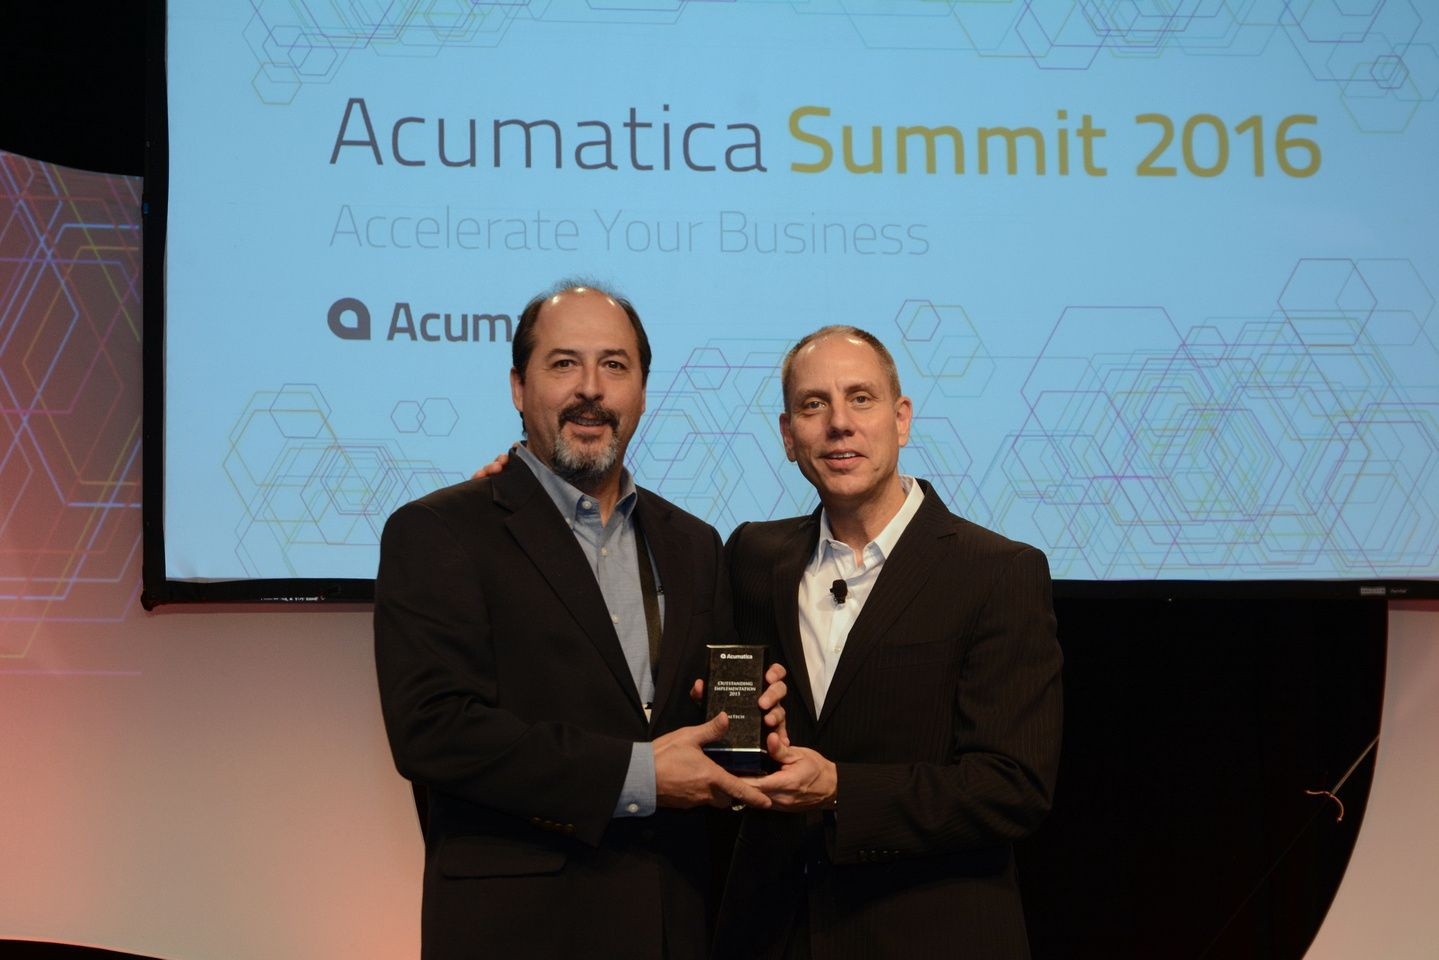 Francisco Callegari, CIO of Guardian SealTech and Jon Roskill, CEO of Acumatica